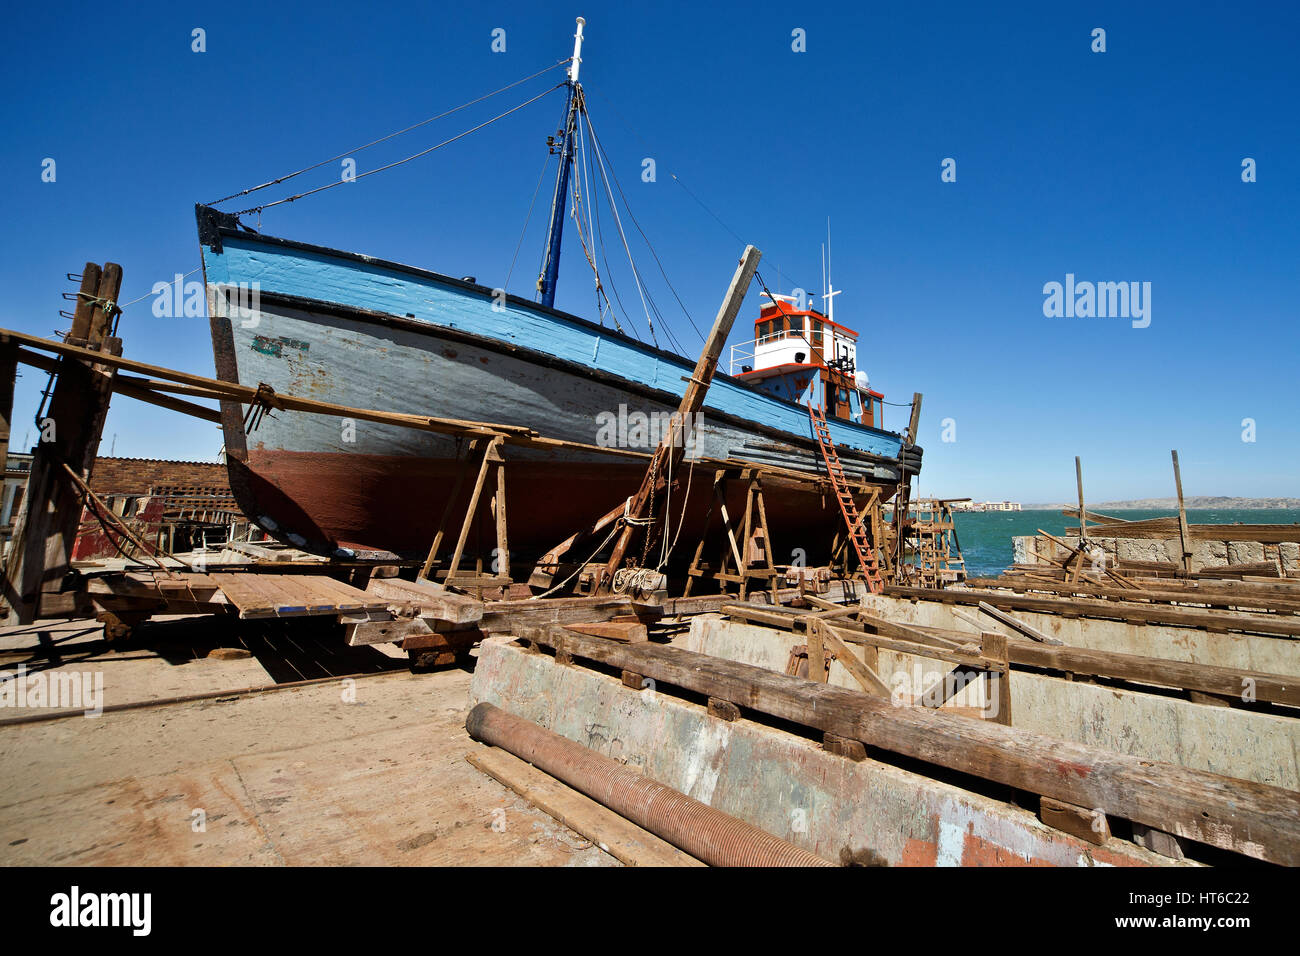 Fishing boat on the hard at Luderitz being refurbished - Stock Image